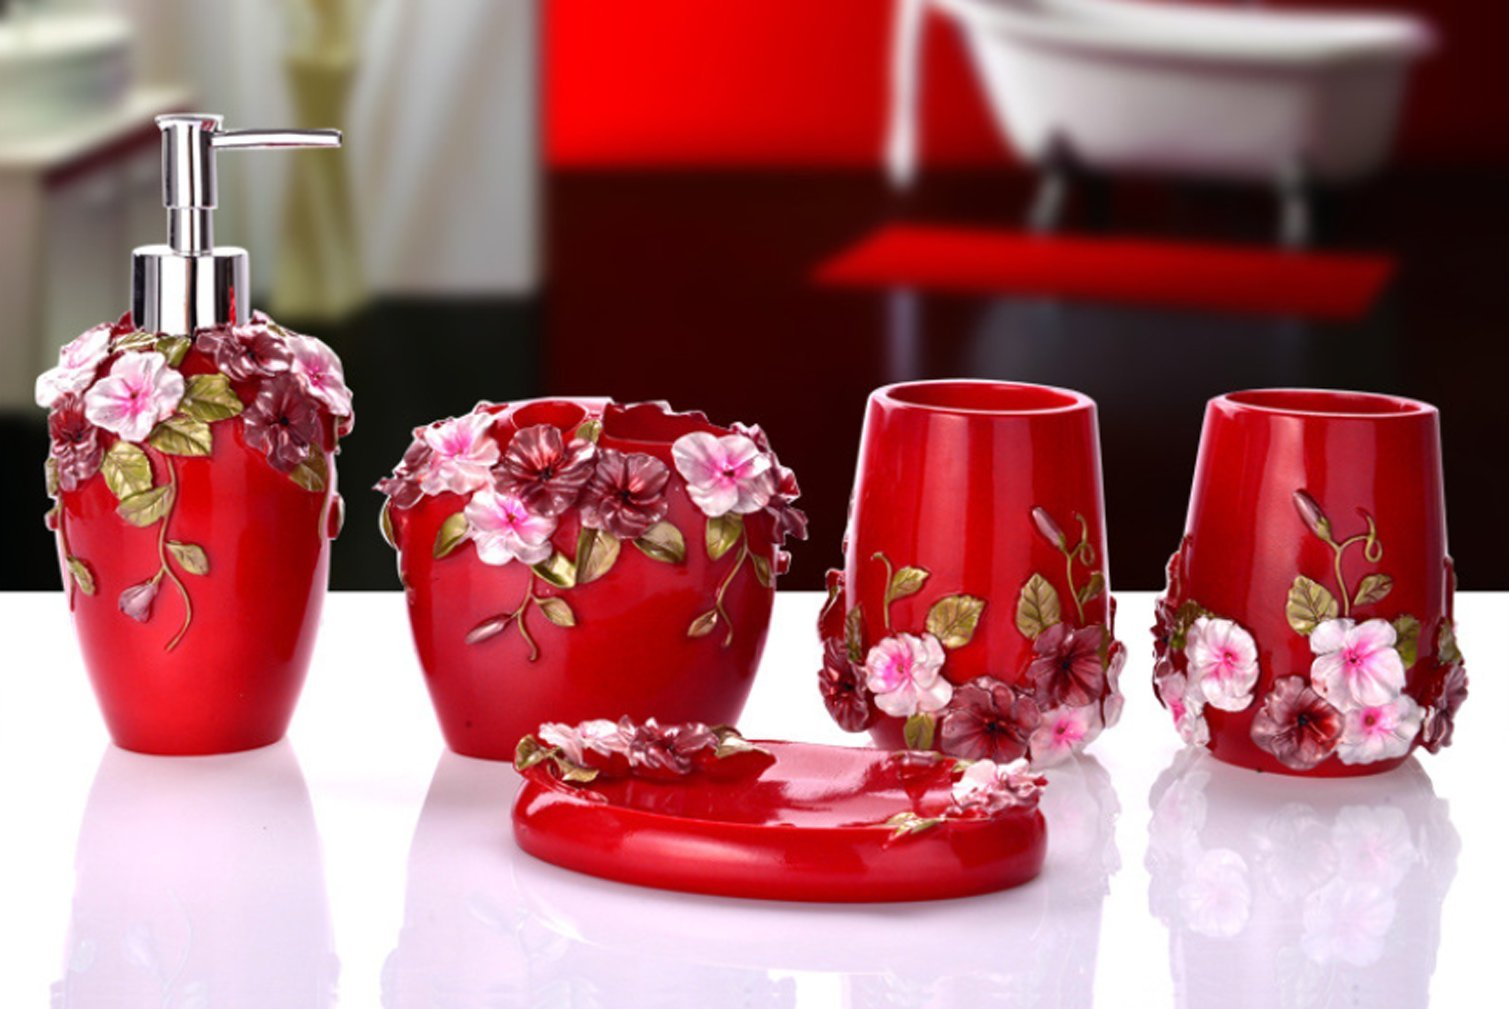 Yiyida Country Style 3D Flowers Resin 5Pcs Bathroom Accessories Set Soap Dispenser/Toothbrush Holder/Tumbler/Soap Dish (Red)